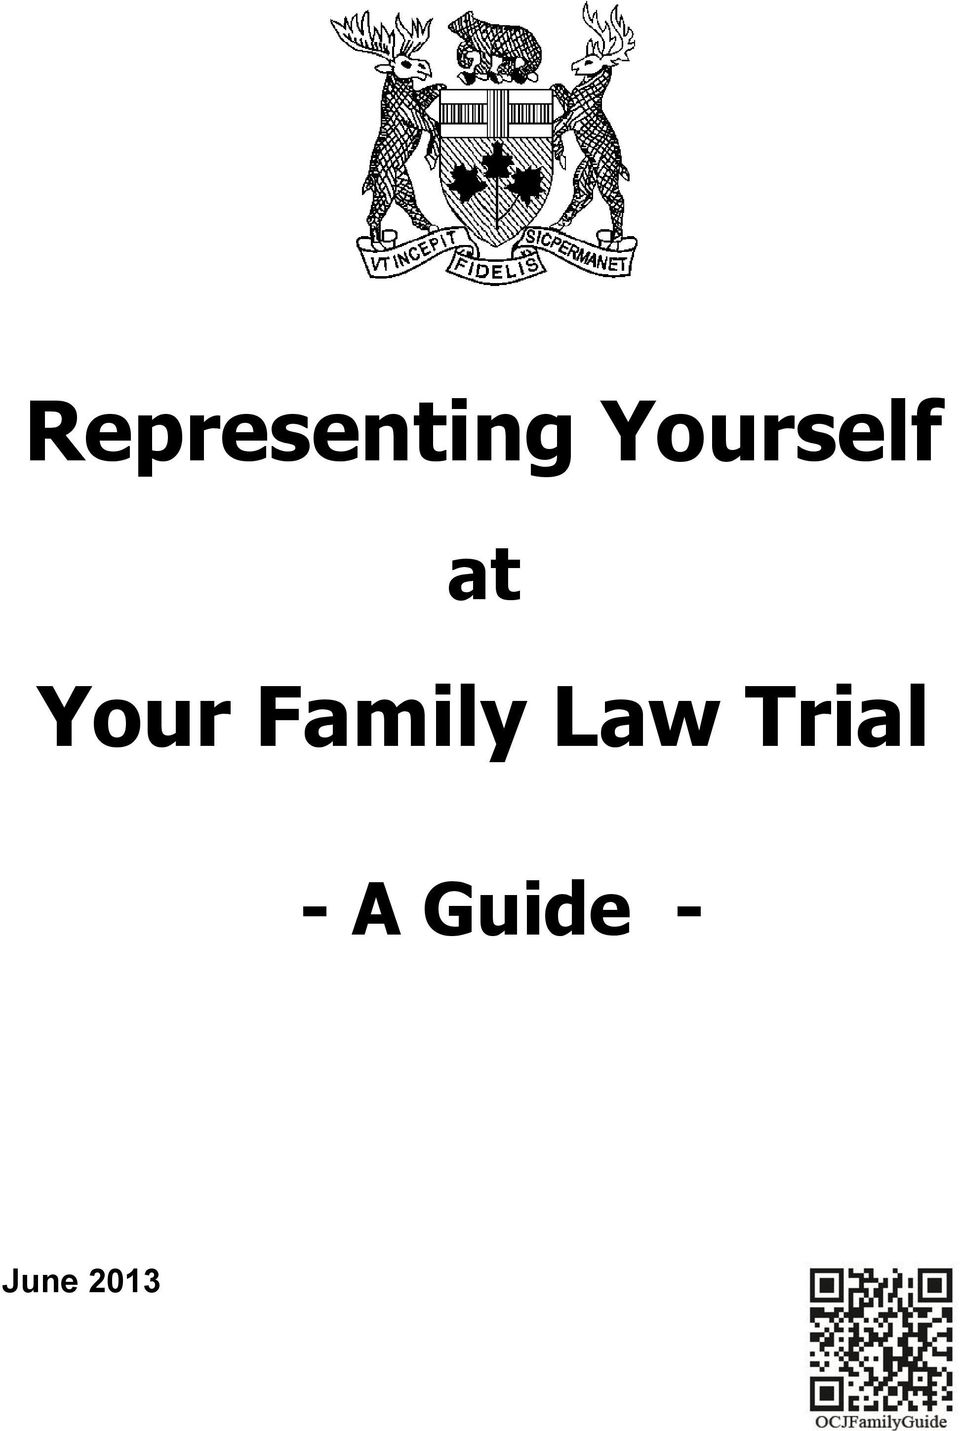 Family Law Trial